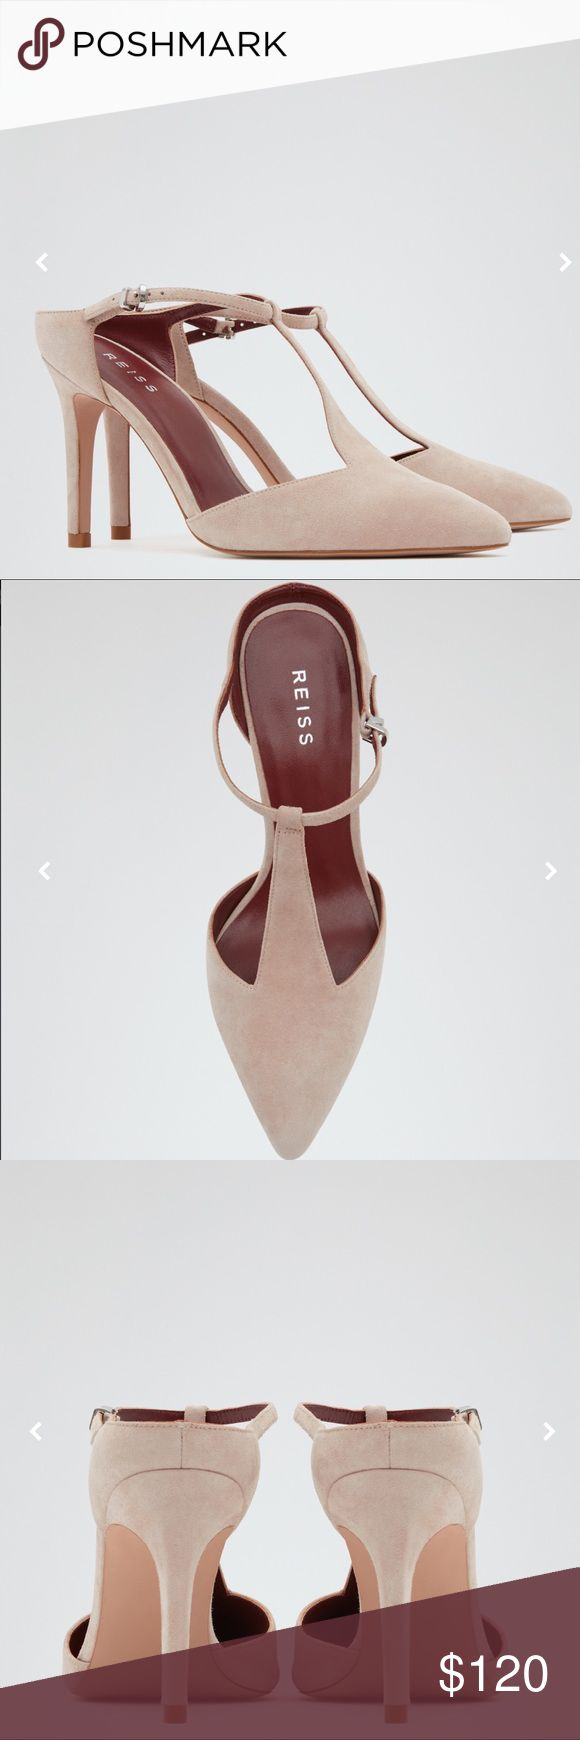 ❤️ Women's Suede T-bar Shoes ❤️ The blush suede Loki mules are a modern take on the classic T-bar design, crafted with a drop heel and a feminine point toe. Versatile enough to see you through the season, team them with everything from an occasion dress to tailored trousers. Point toe. High stiletto heel. Buckled ankle strap. Note that sizes displayed are US sizes. Heel height: 9.1 CM. Washcare: Dry Wipe Clean Only. Composition: 100% Goat Leather. Lining composition: 100% Goat…